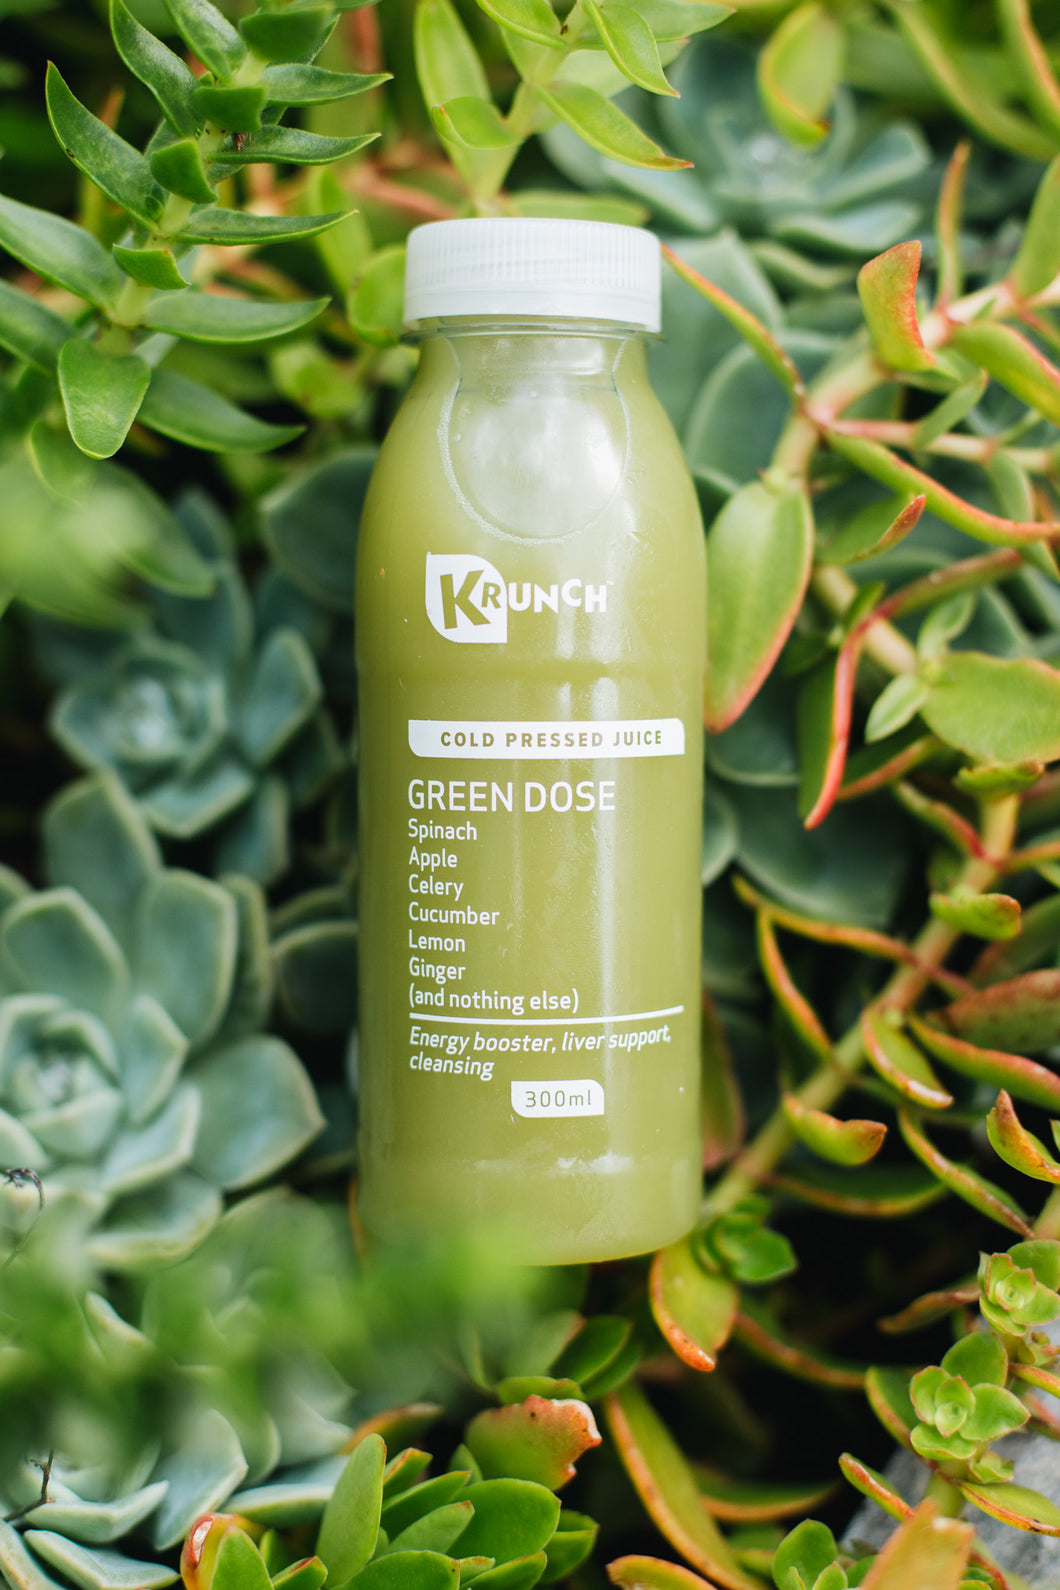 Green Dose Cold Pressed Juice 300ml